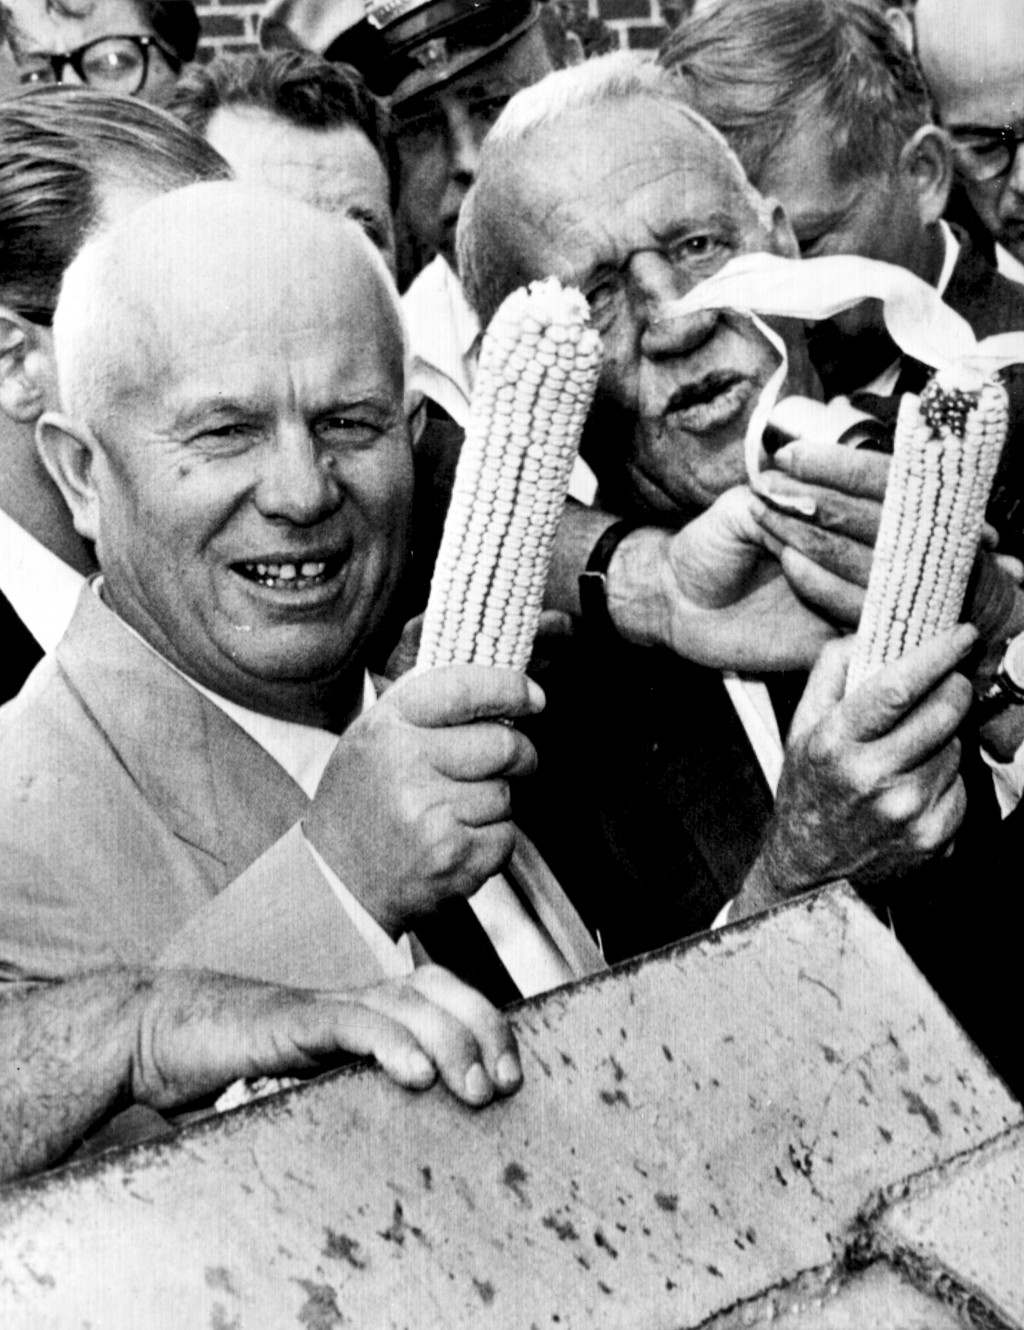 FILE - In this Sept. 23, 1959, file photo, Soviet Premier Nikita Khrushchev and Roswell Garst pose with corn cobs during an inspection tour of The Gar...